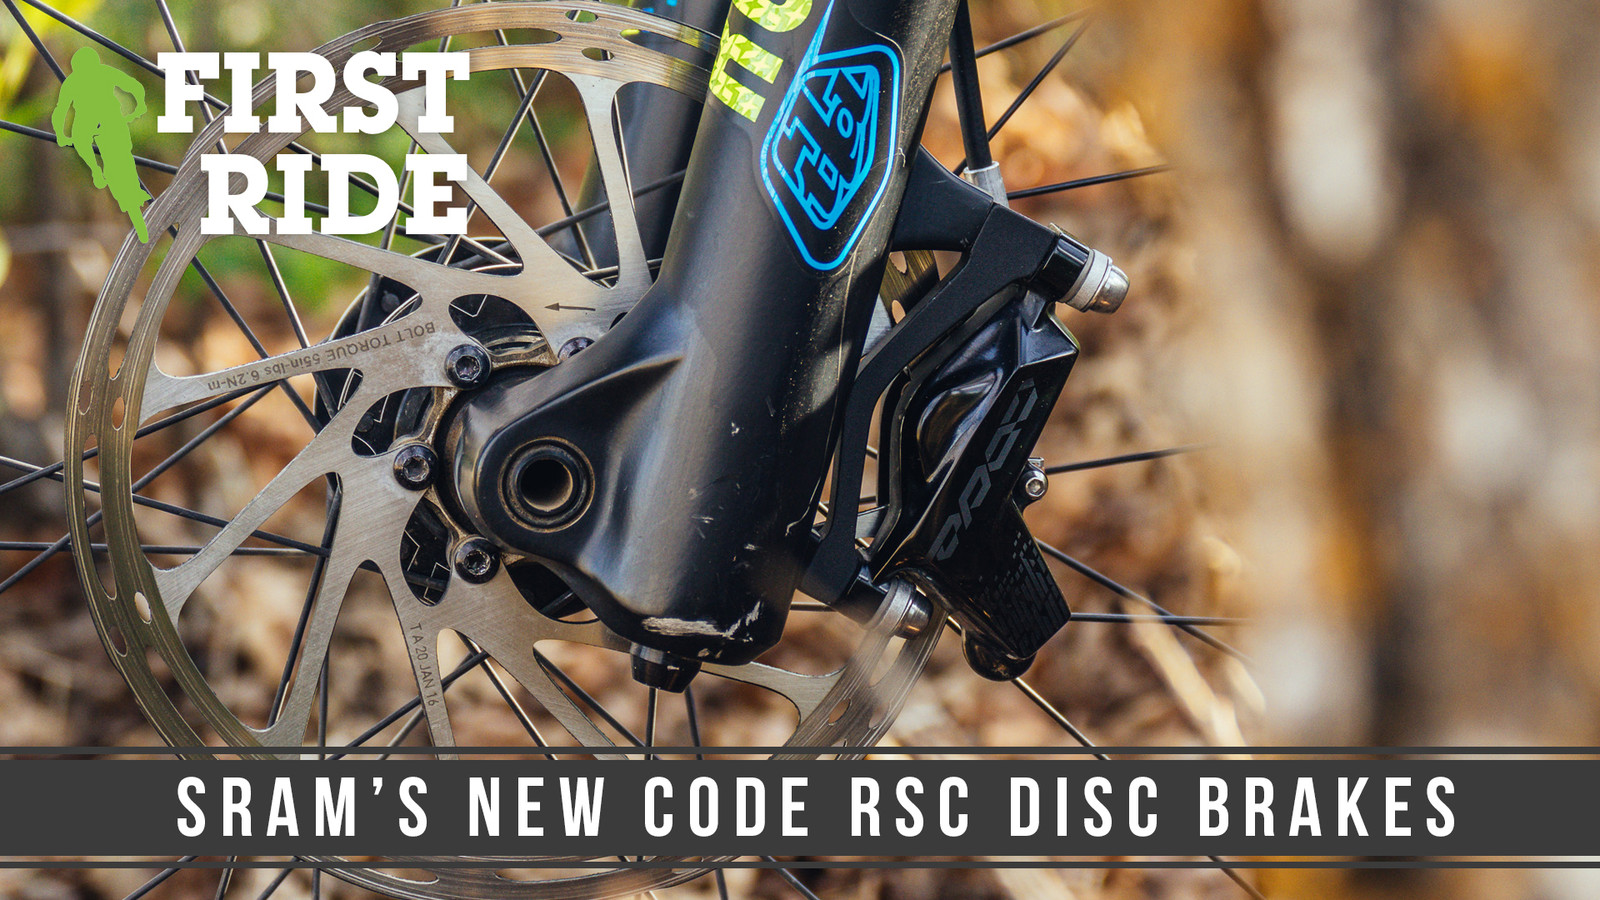 First Ride: SRAM's New Code RSC Brakes